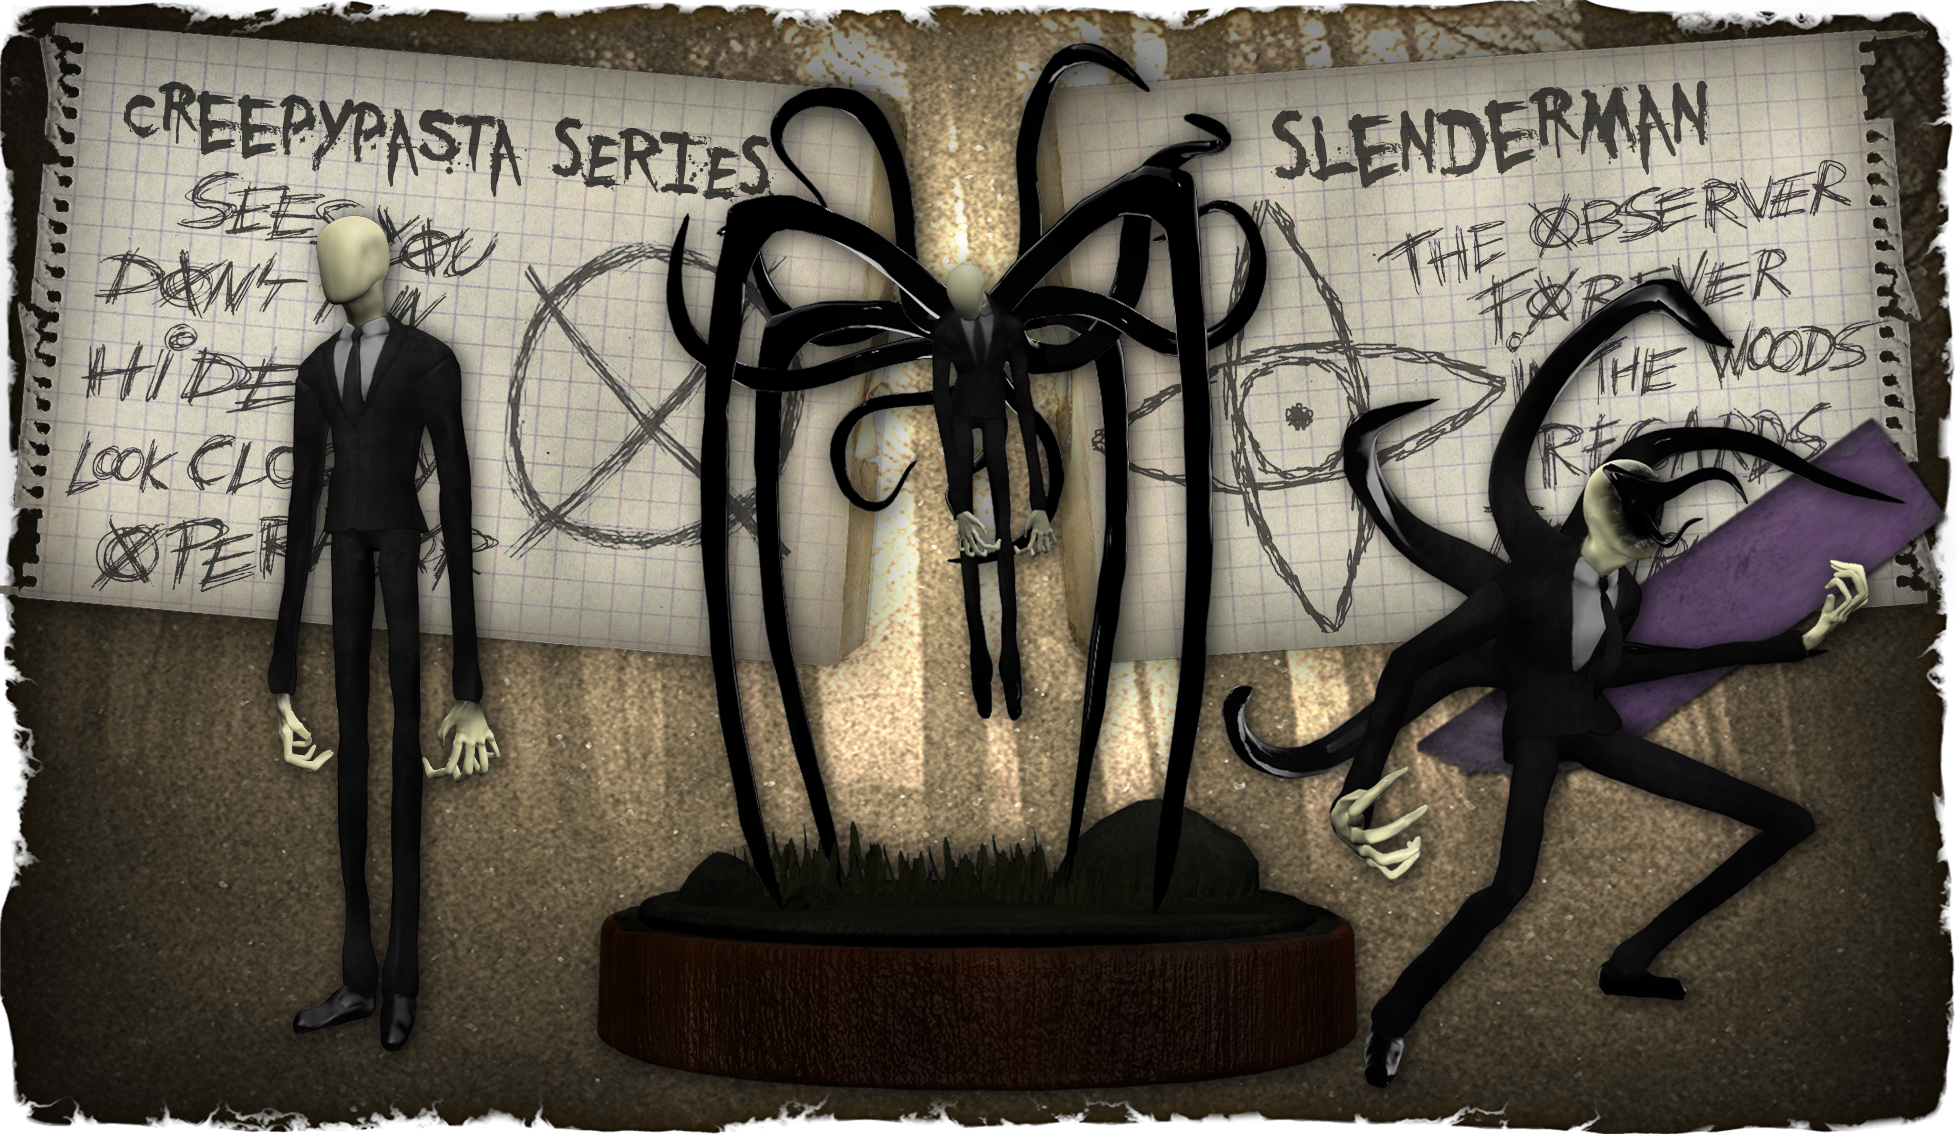 Creepypasta Series 5: Slenderman by dimelotu